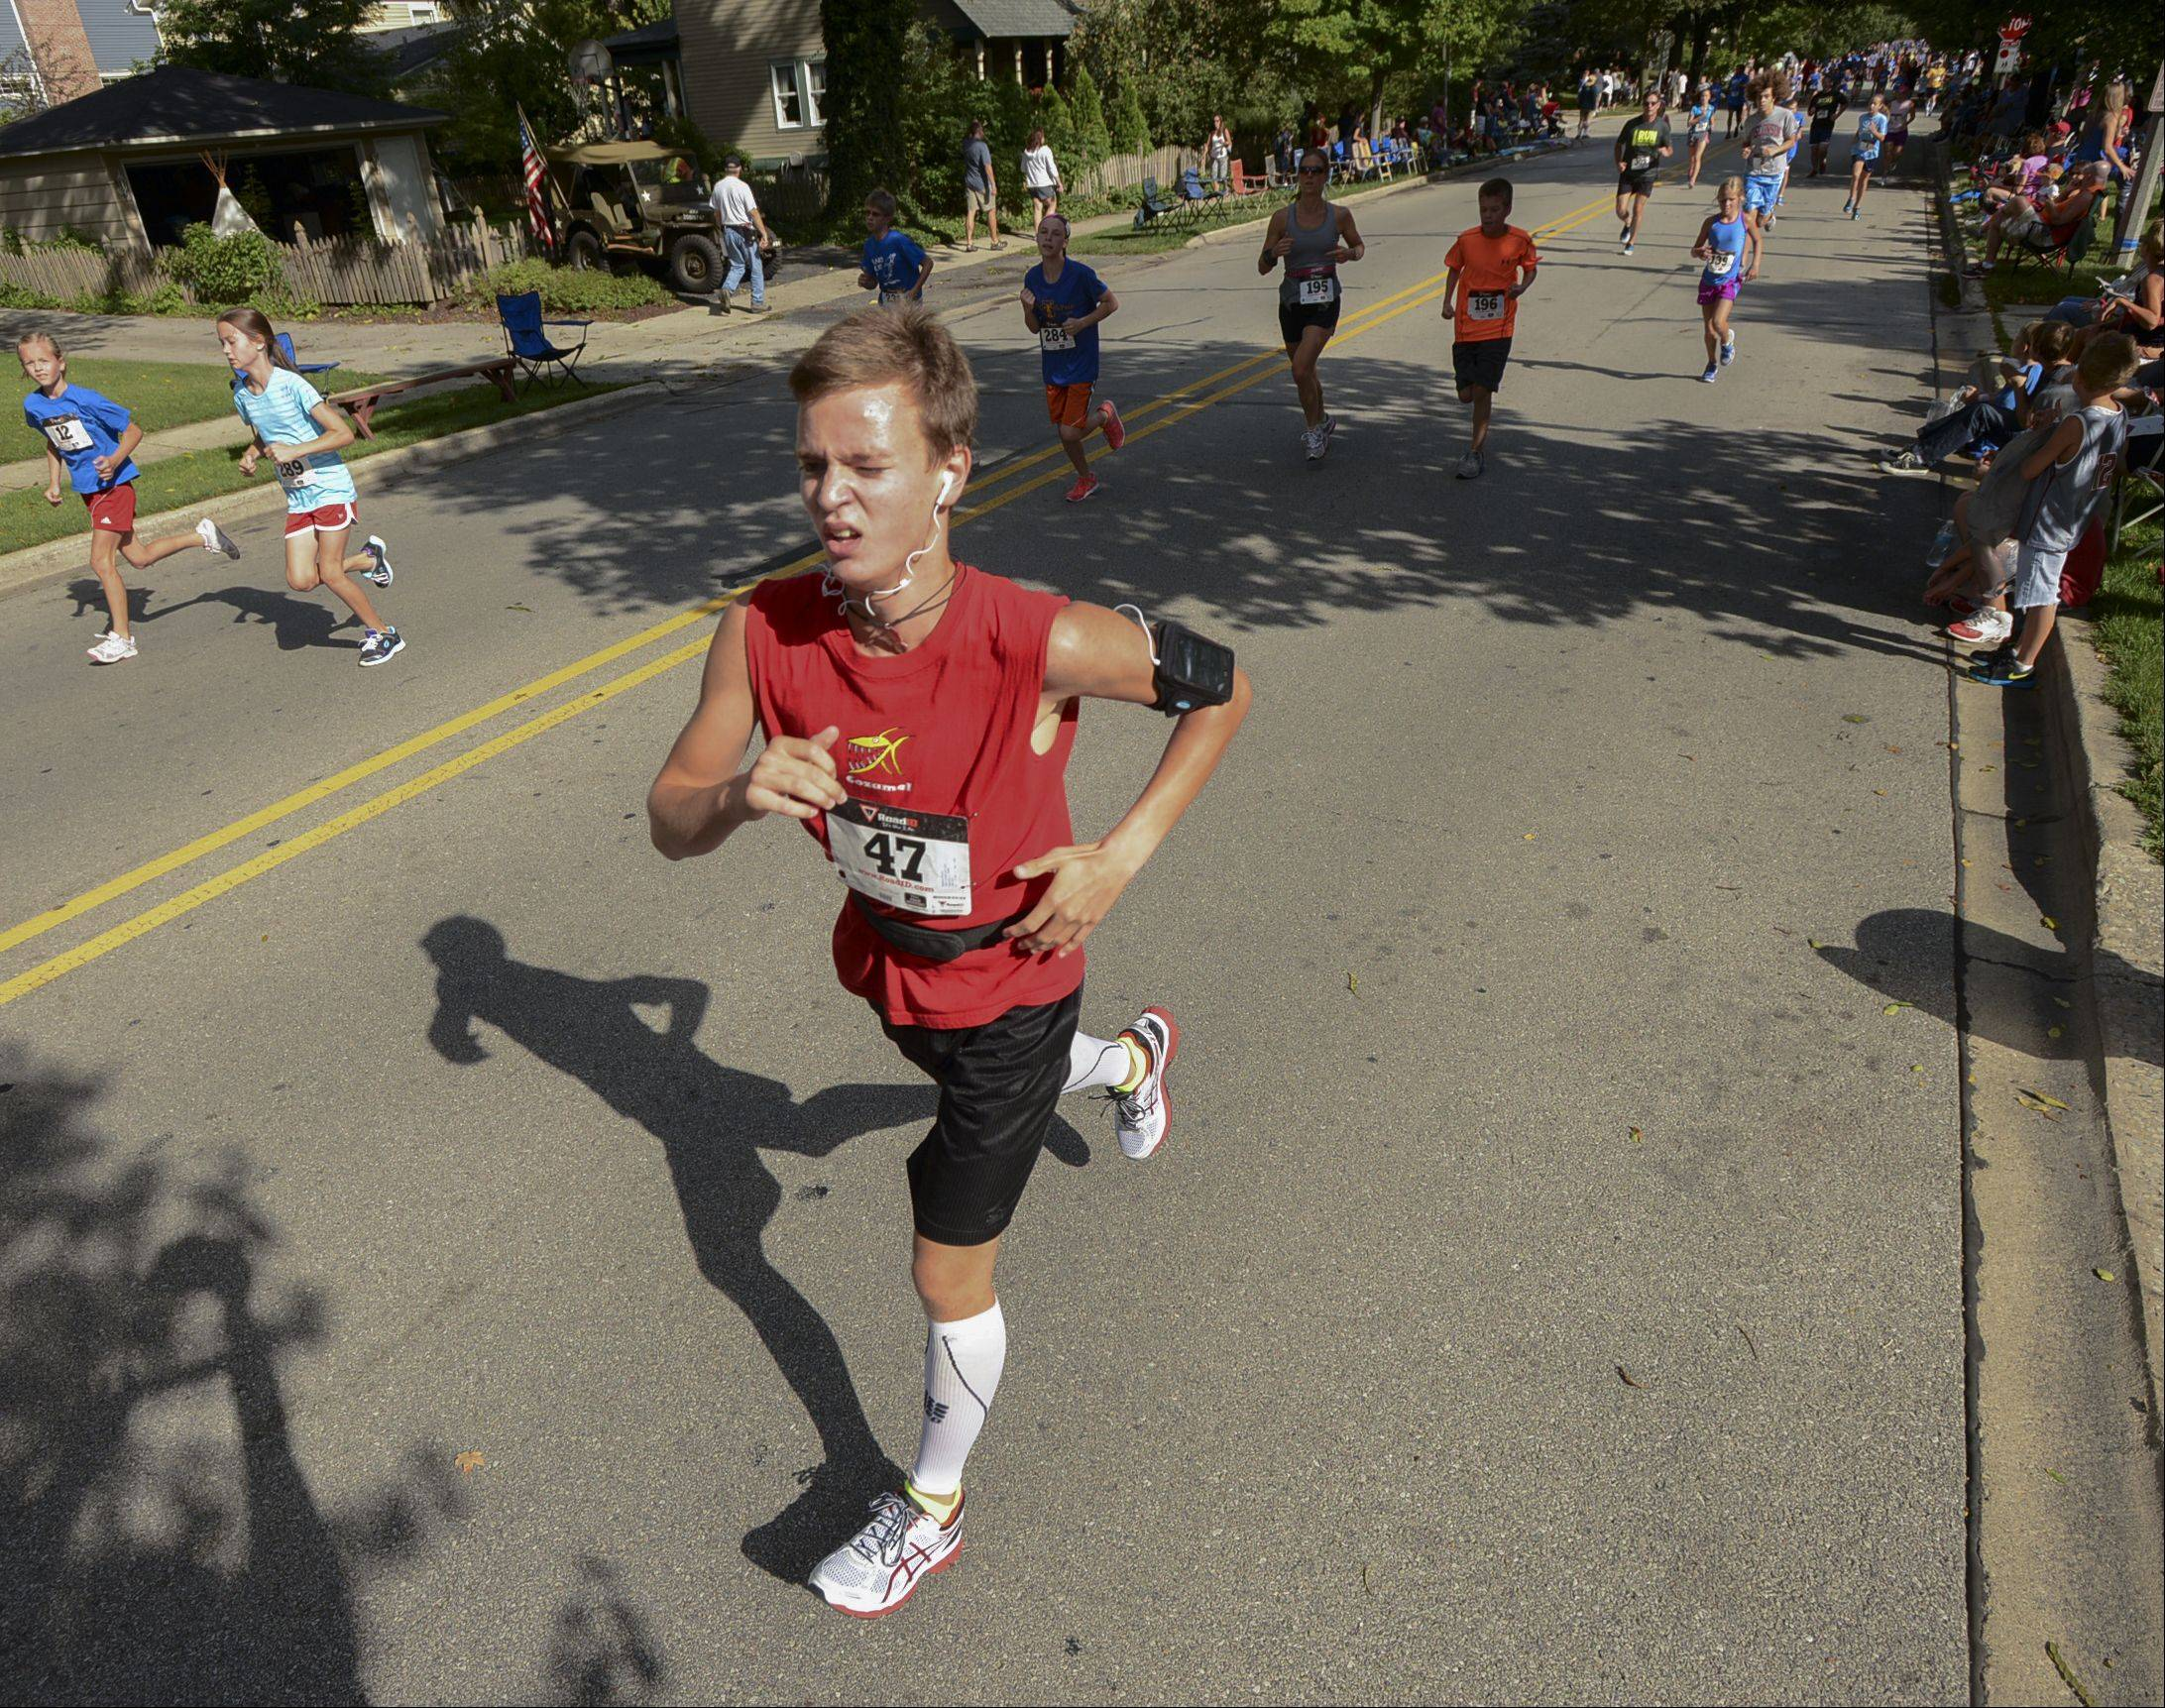 Runners participate in the Fling Mile on Monday during Last Fling, the annual festival in Naperville.